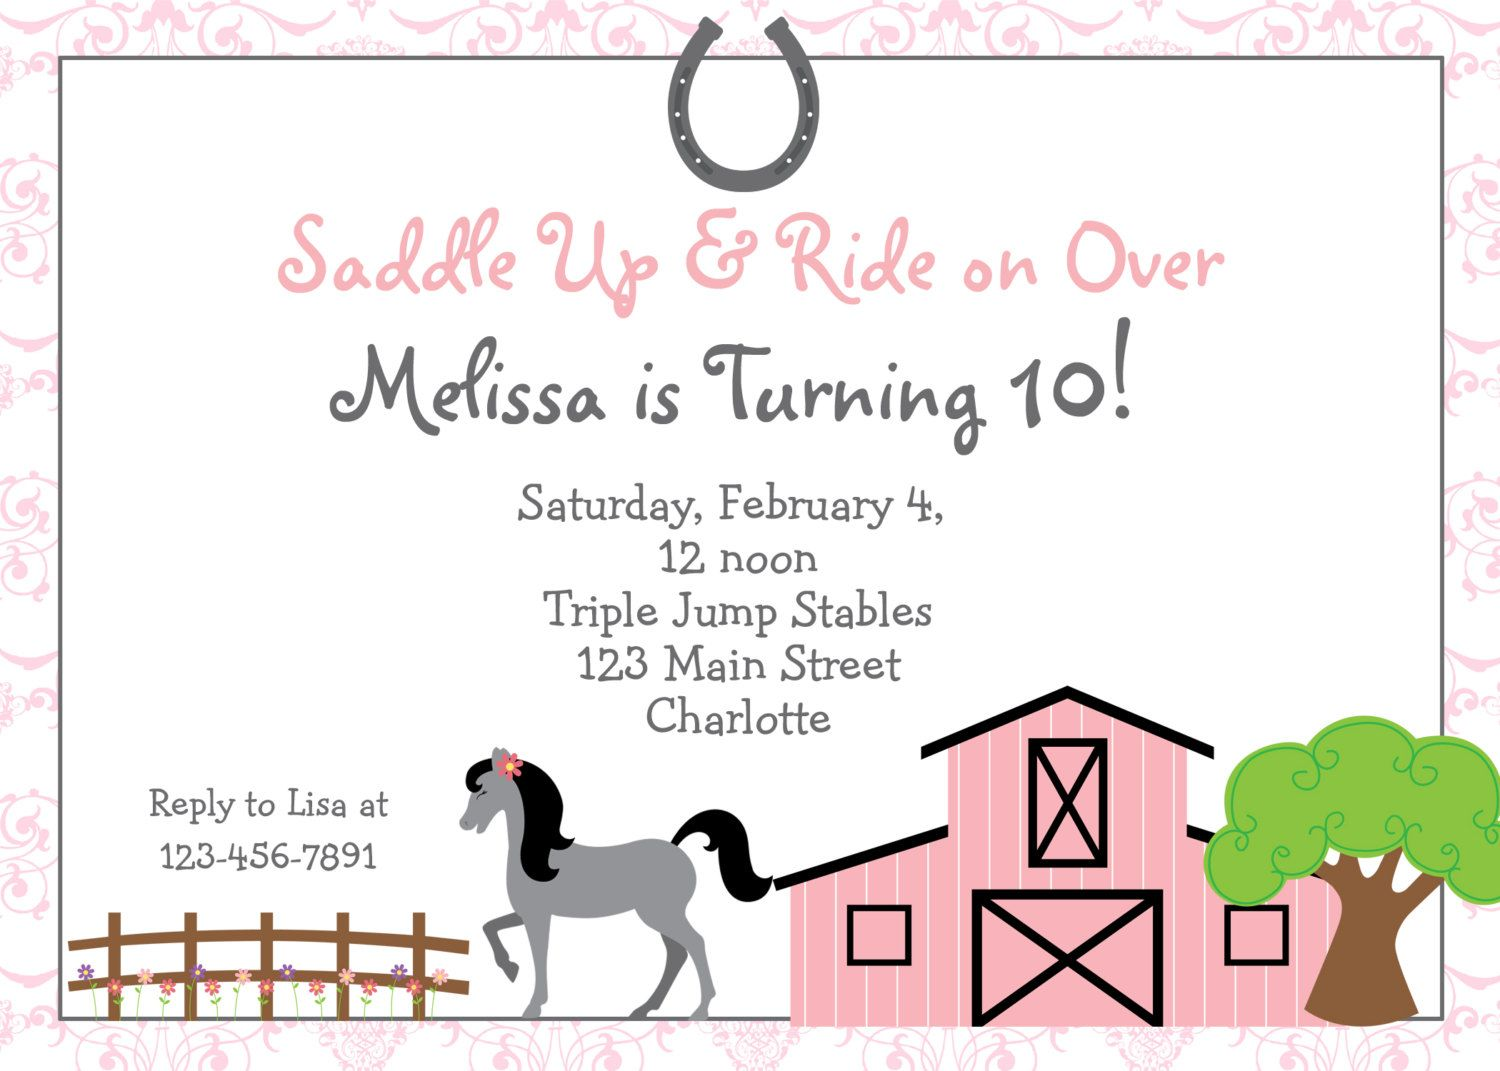 Free Printable Horse Riding Party Invitations – Party Invites Templates Free to Print